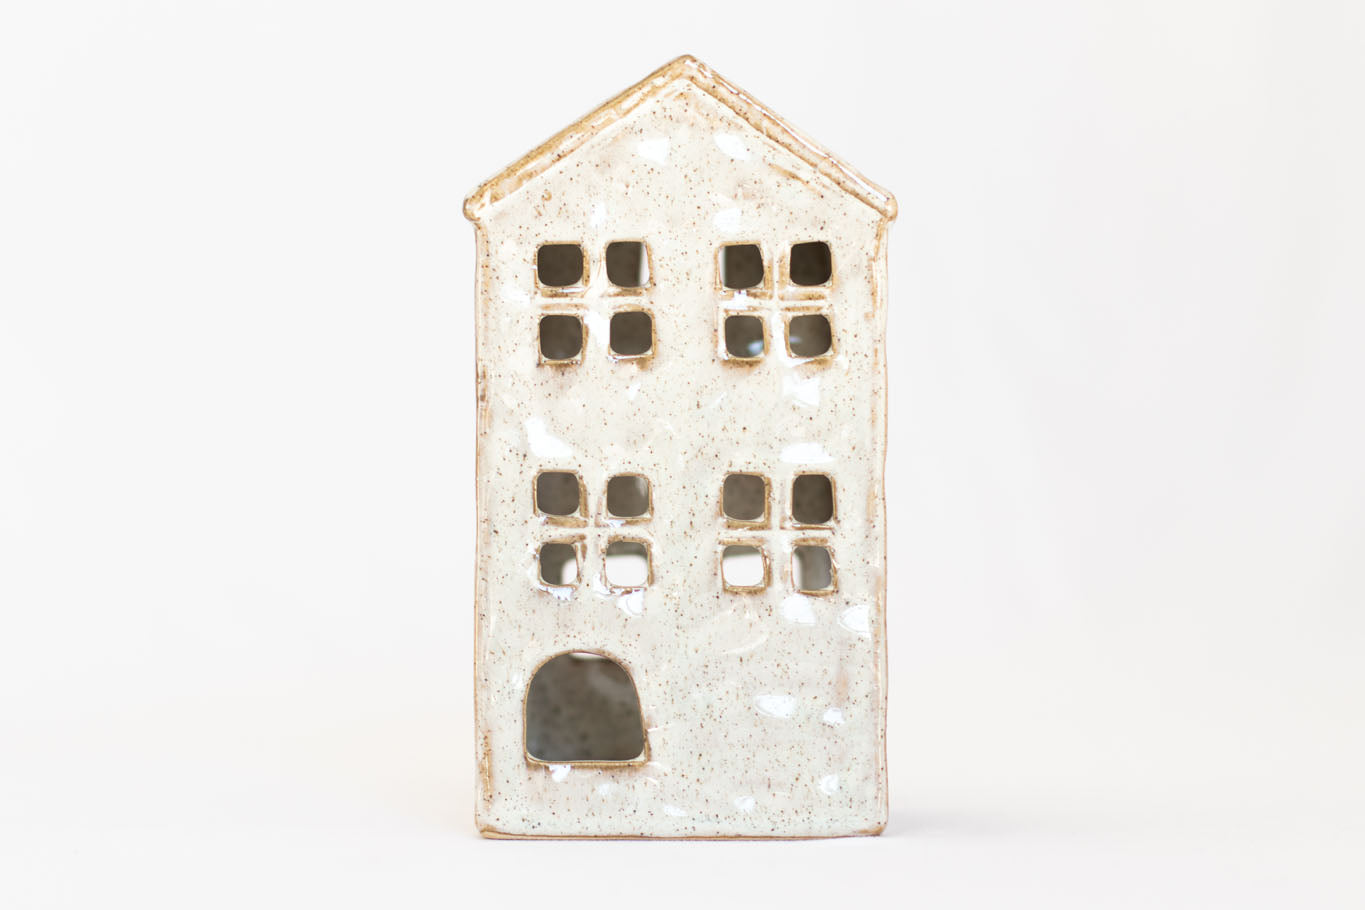 Merry Ceramic Tidy House - Large